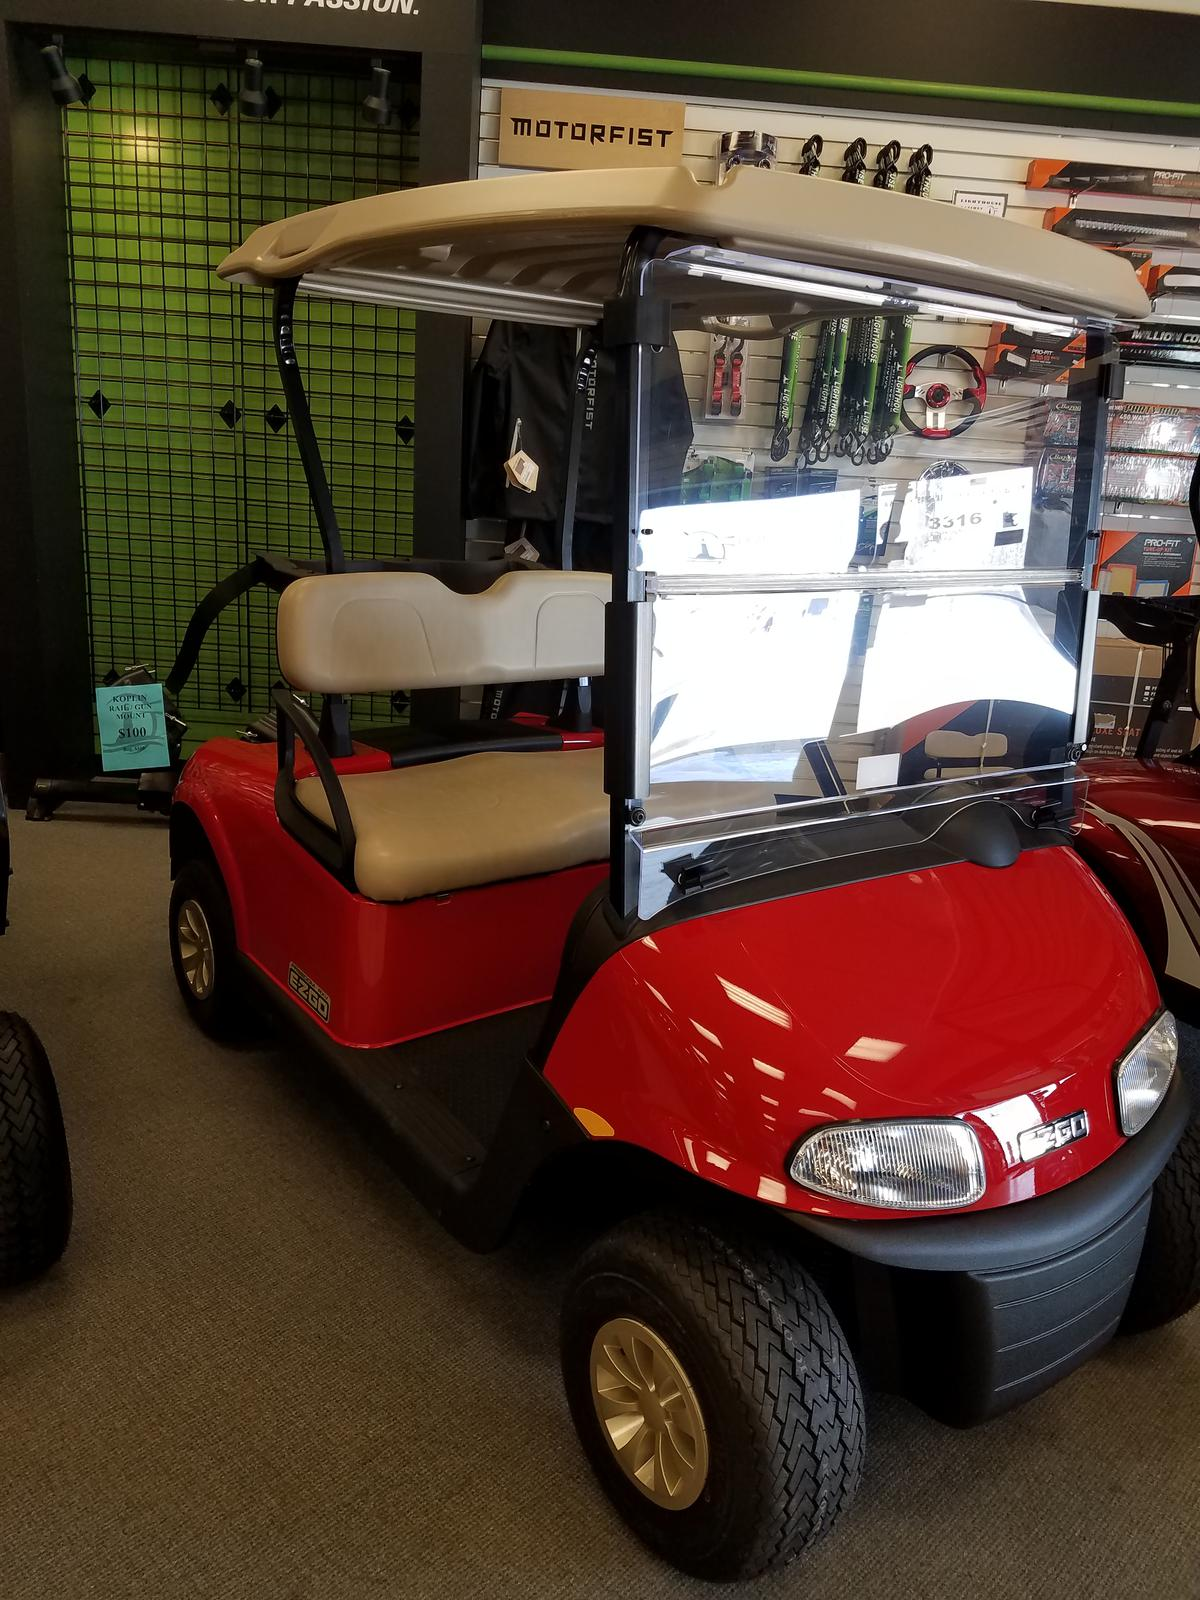 Inventory from Hustler Turf Equipment and E-Z-GO Lighthouse